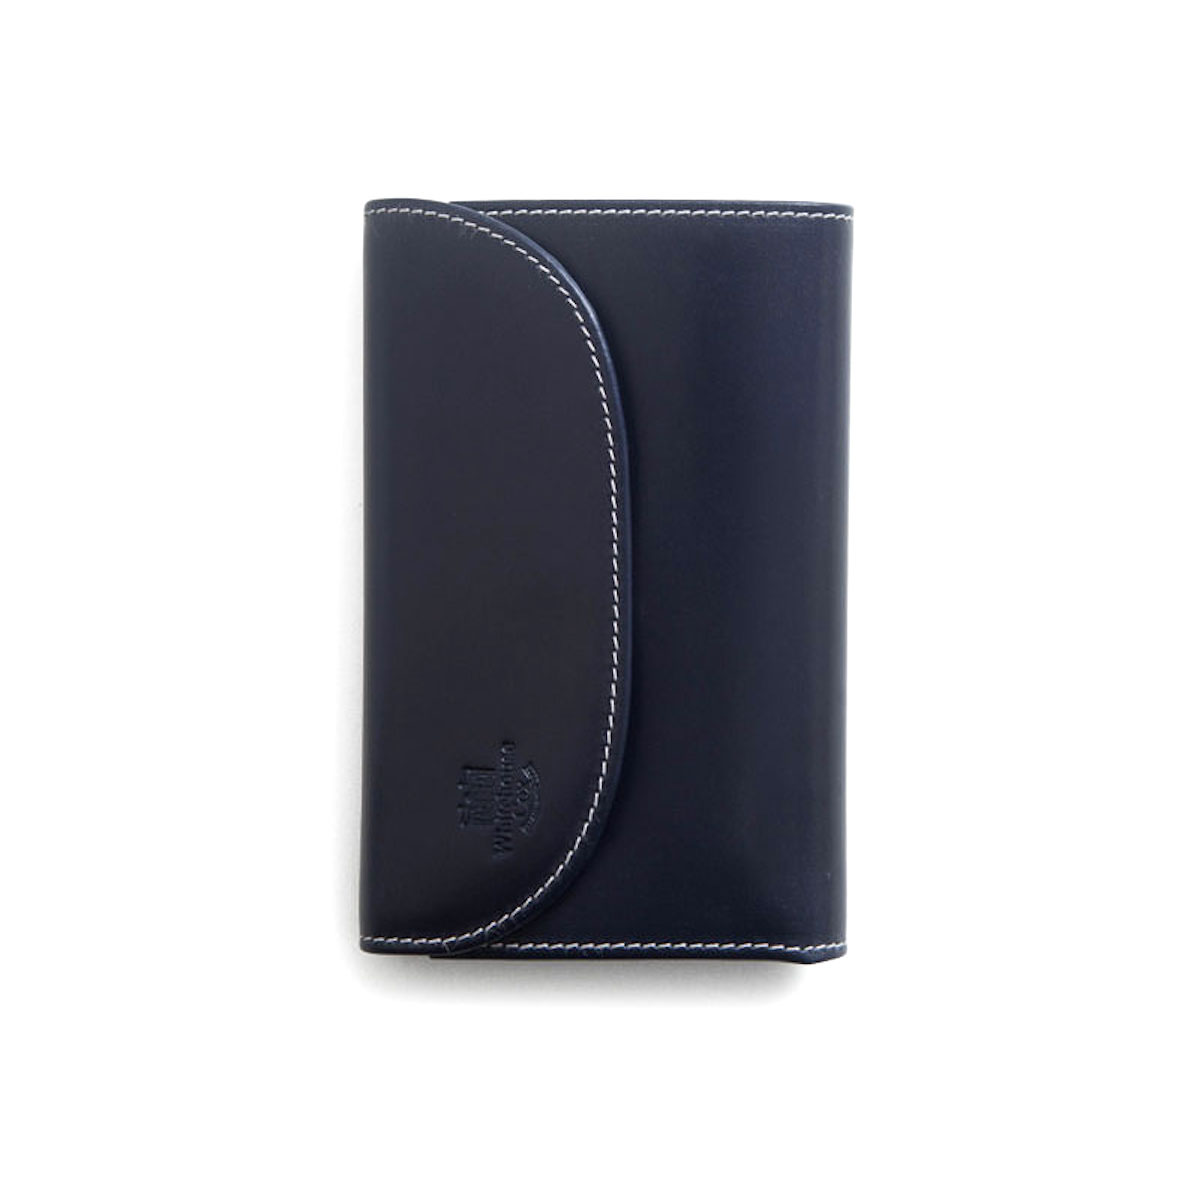 WHITEHOUSE COX / S7660 3FOLD WALLET (Navy×Espresso)